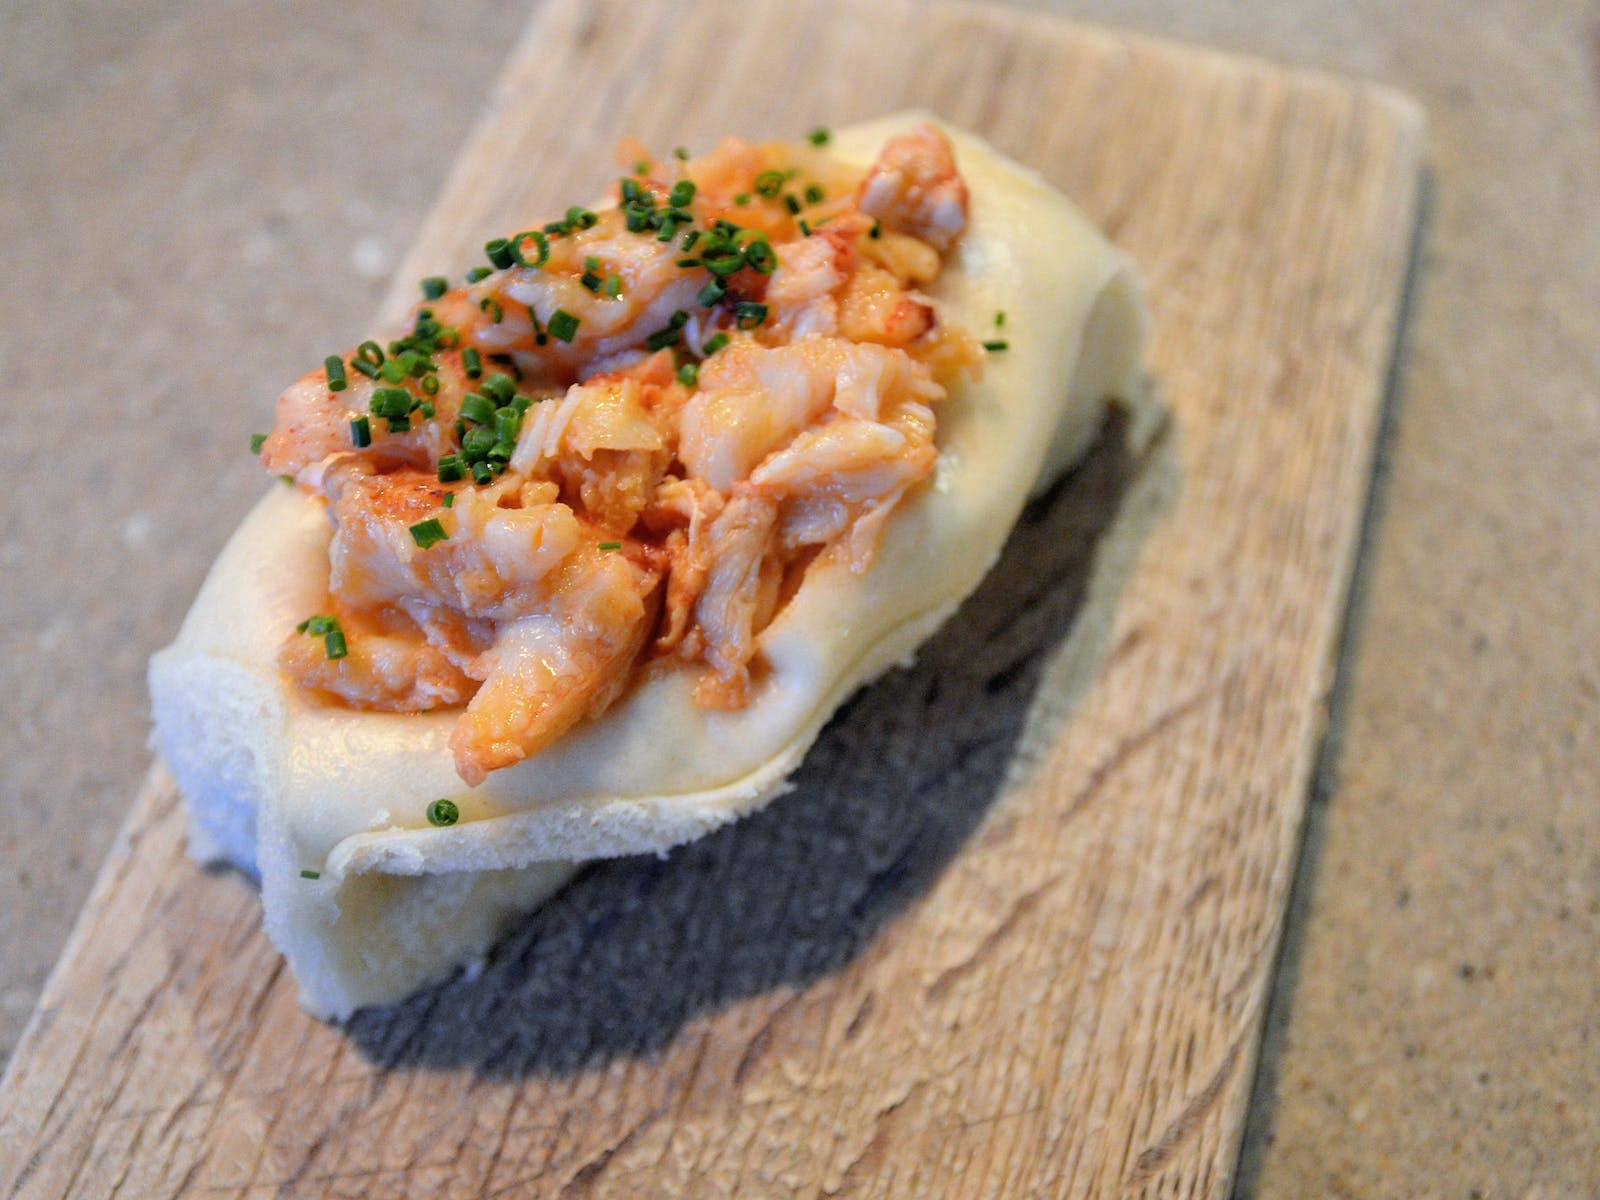 Eventide Oyster Co. lobster roll